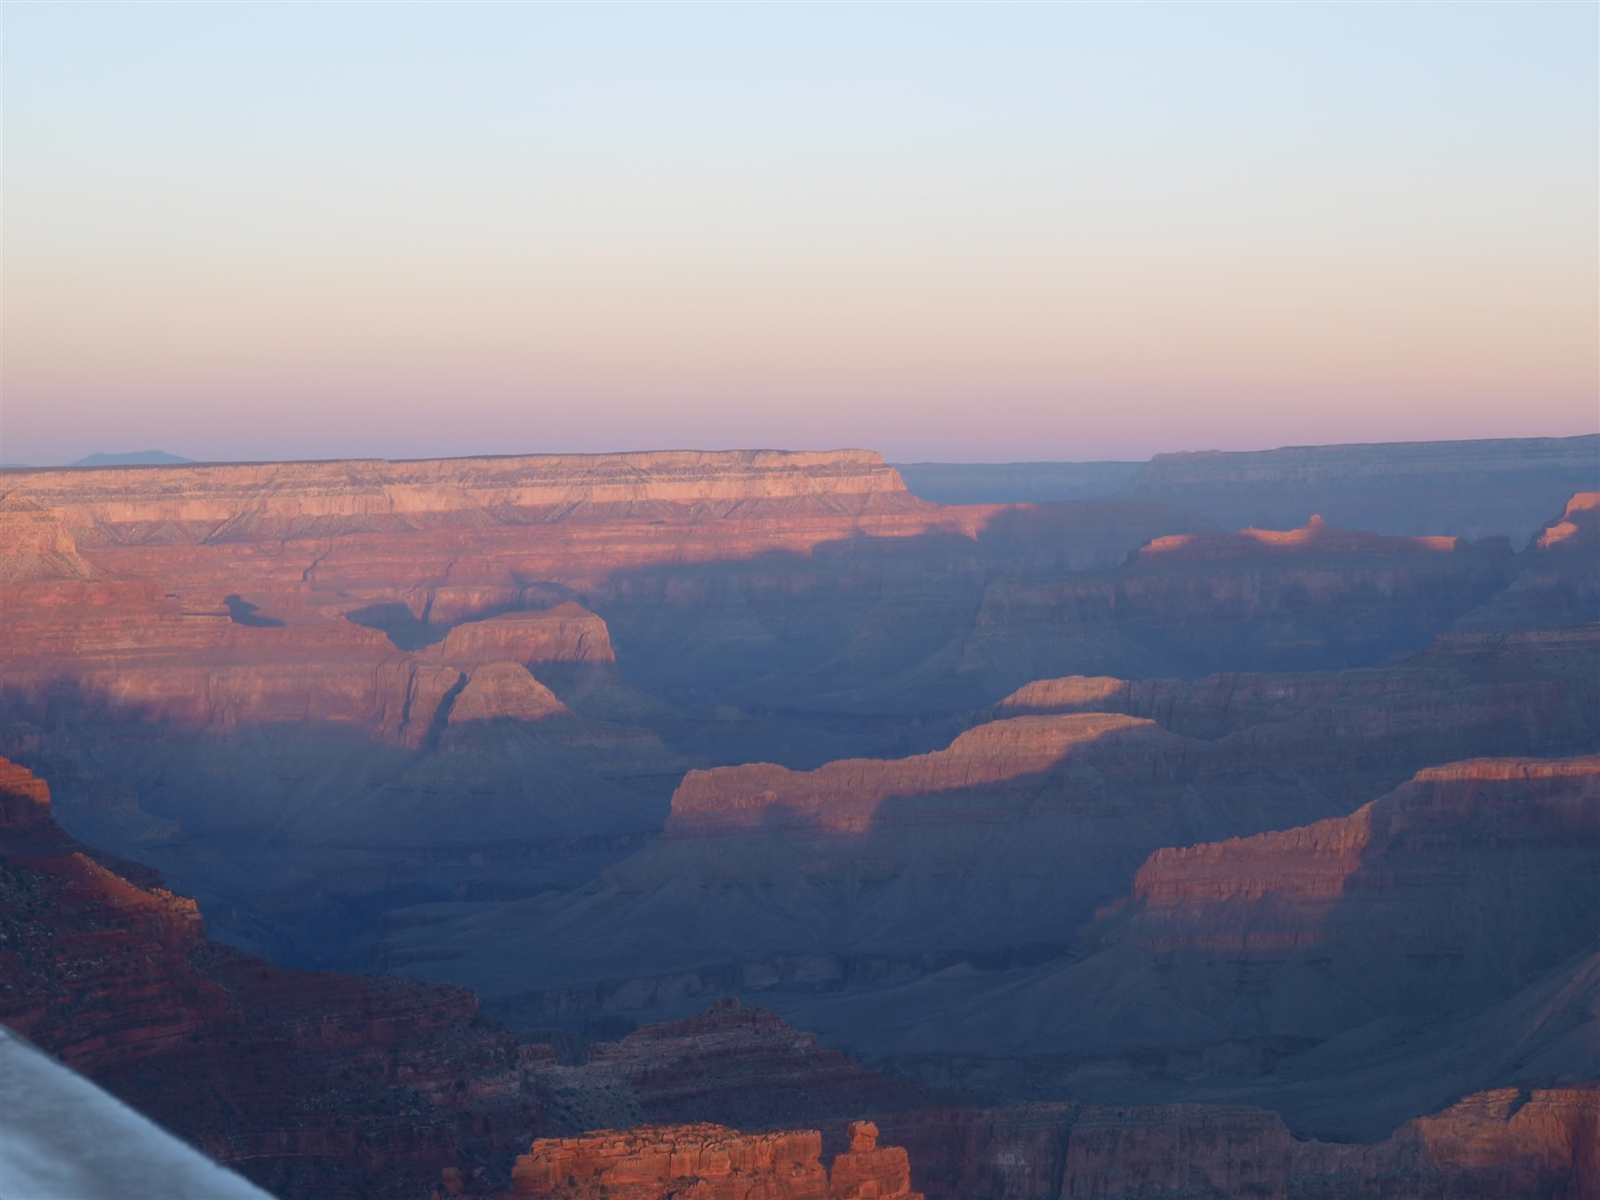 Grand Canyon web cam